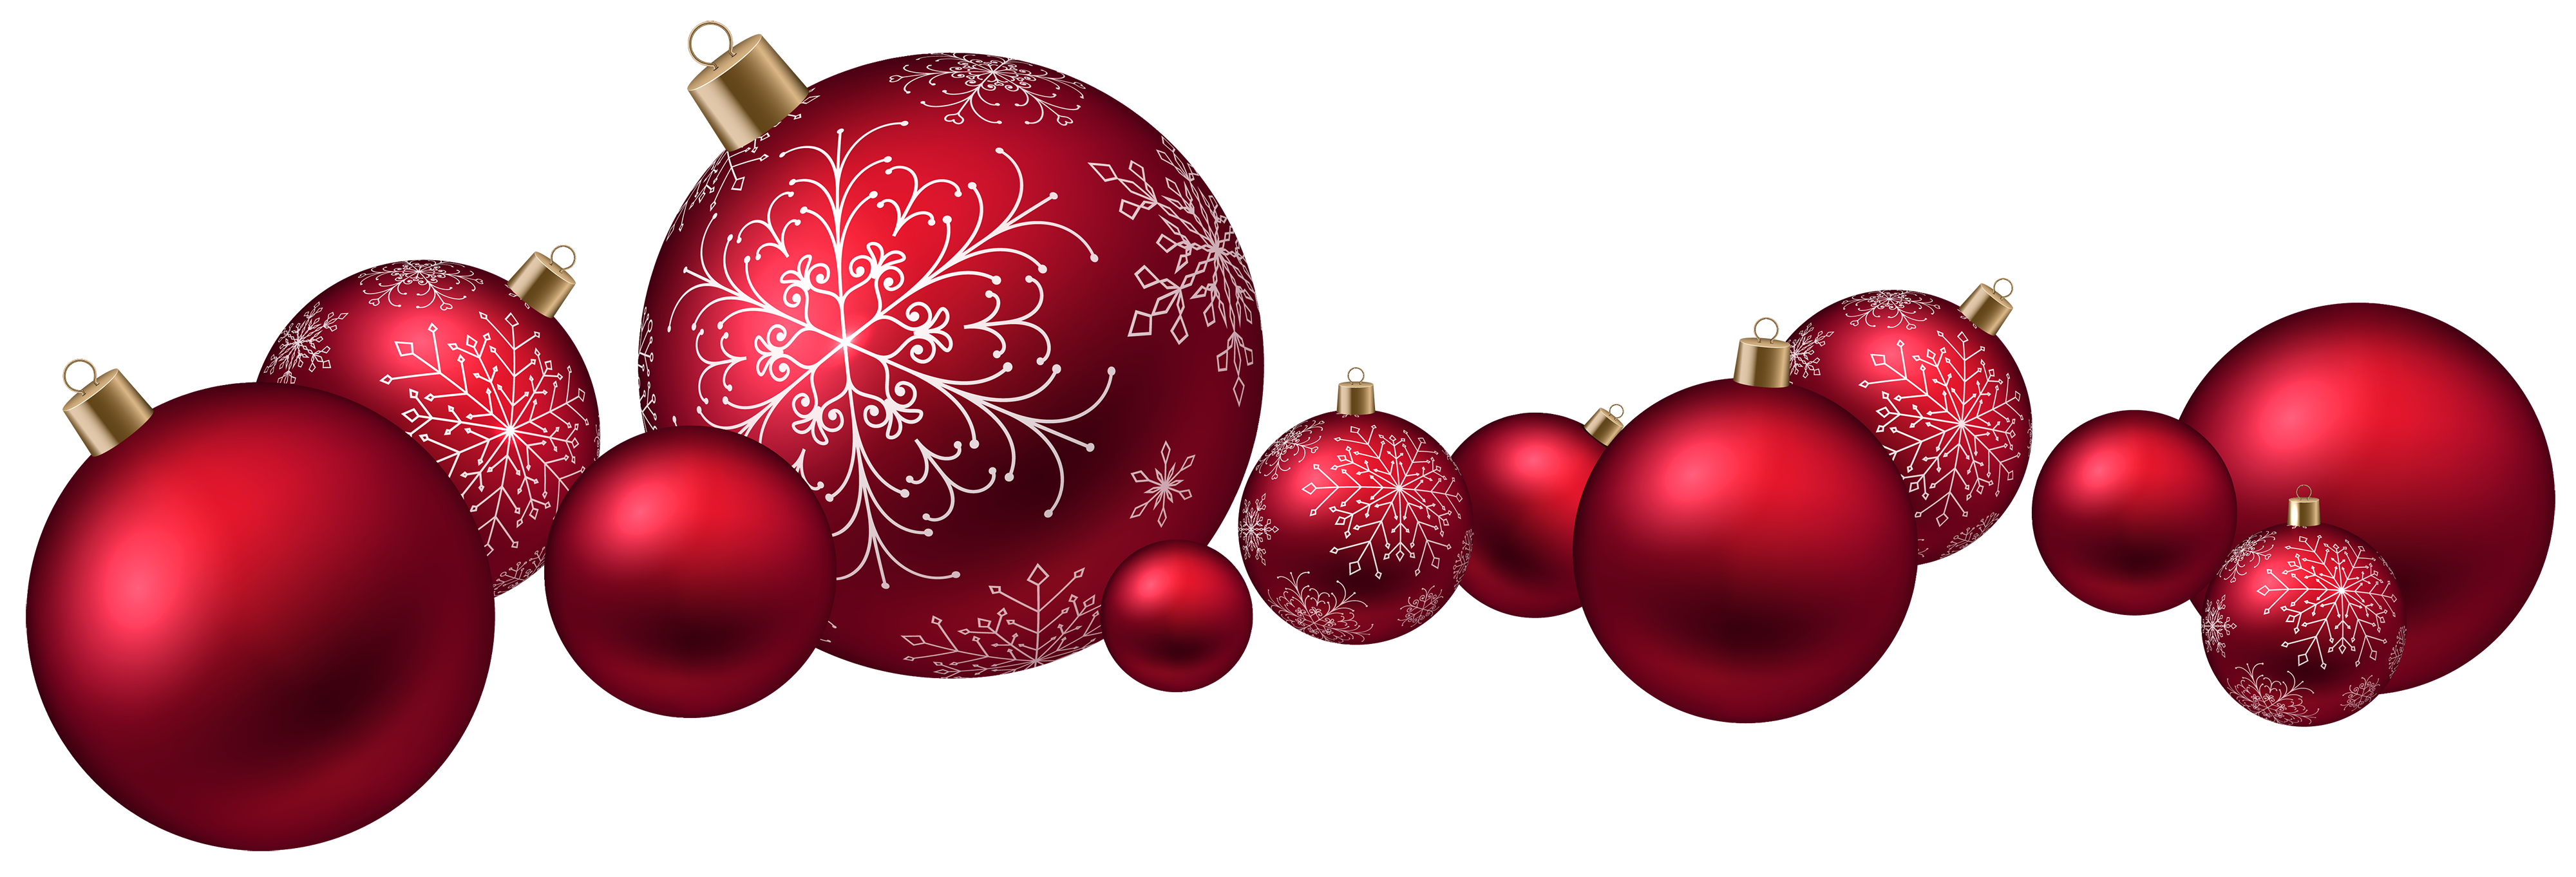 4000x1362 Red Christmas Ball Png Clipart